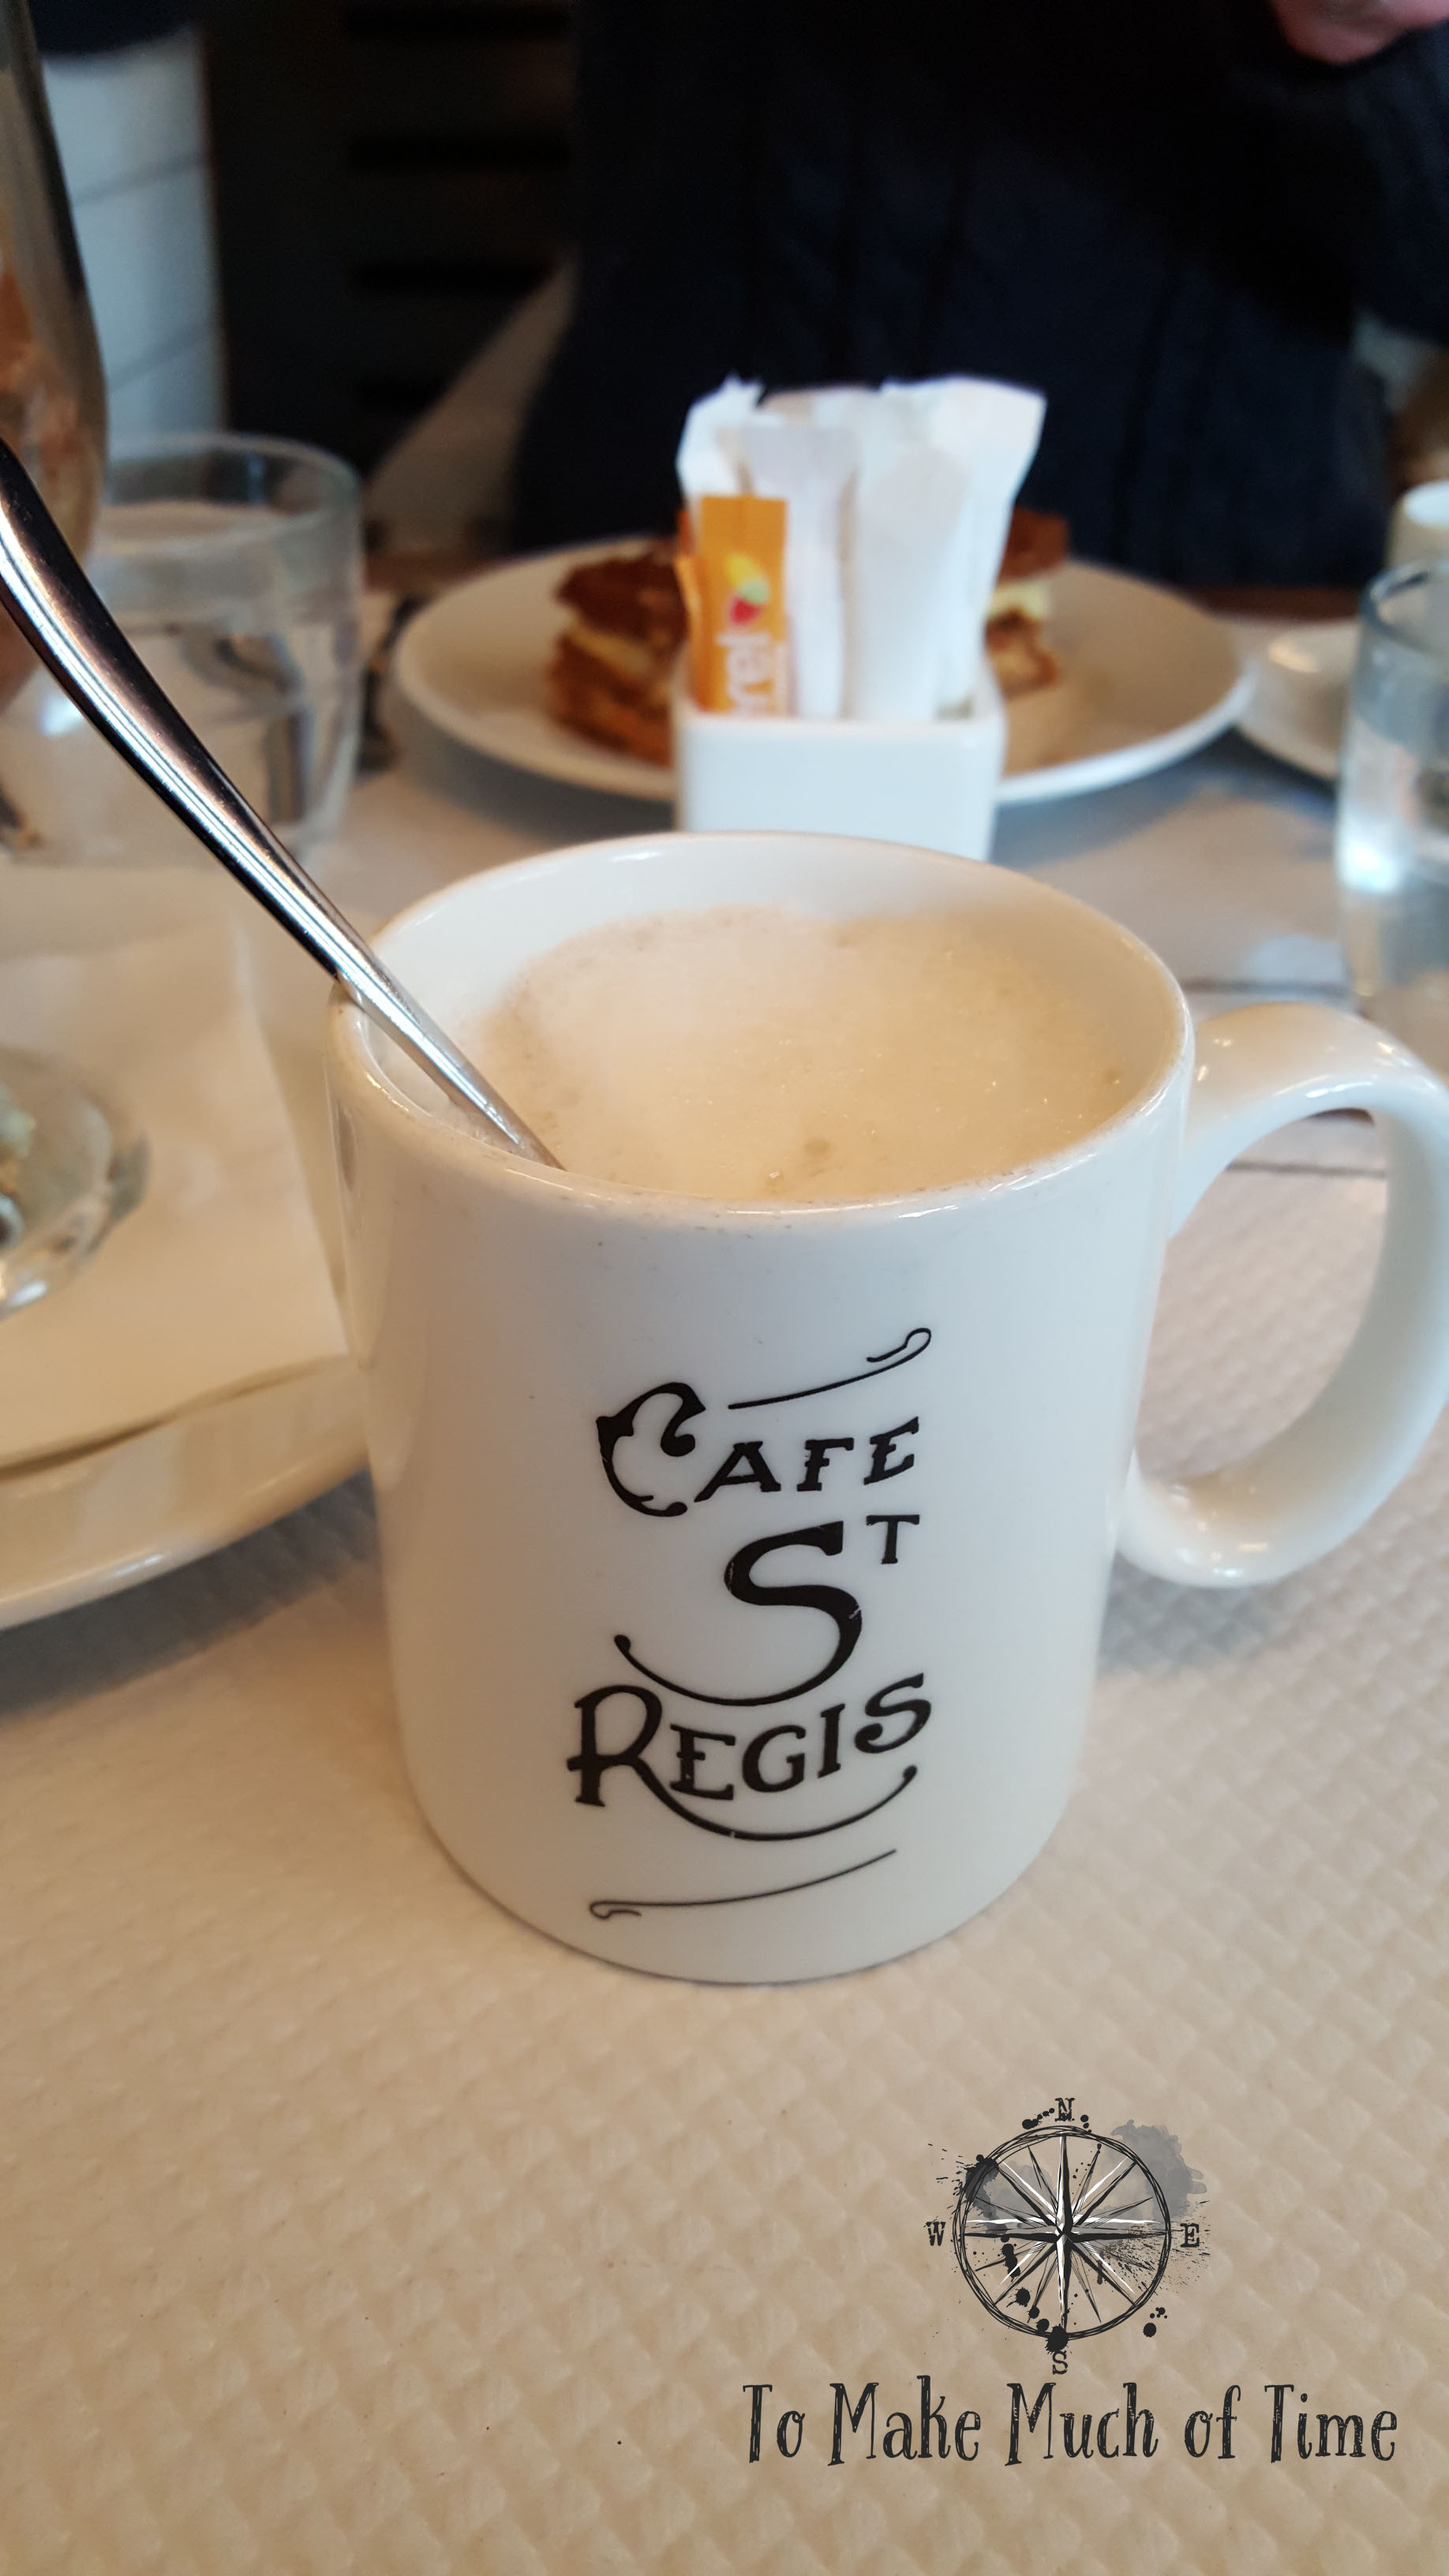 Cafe St Regis, a friendly and relaxed place to eat.